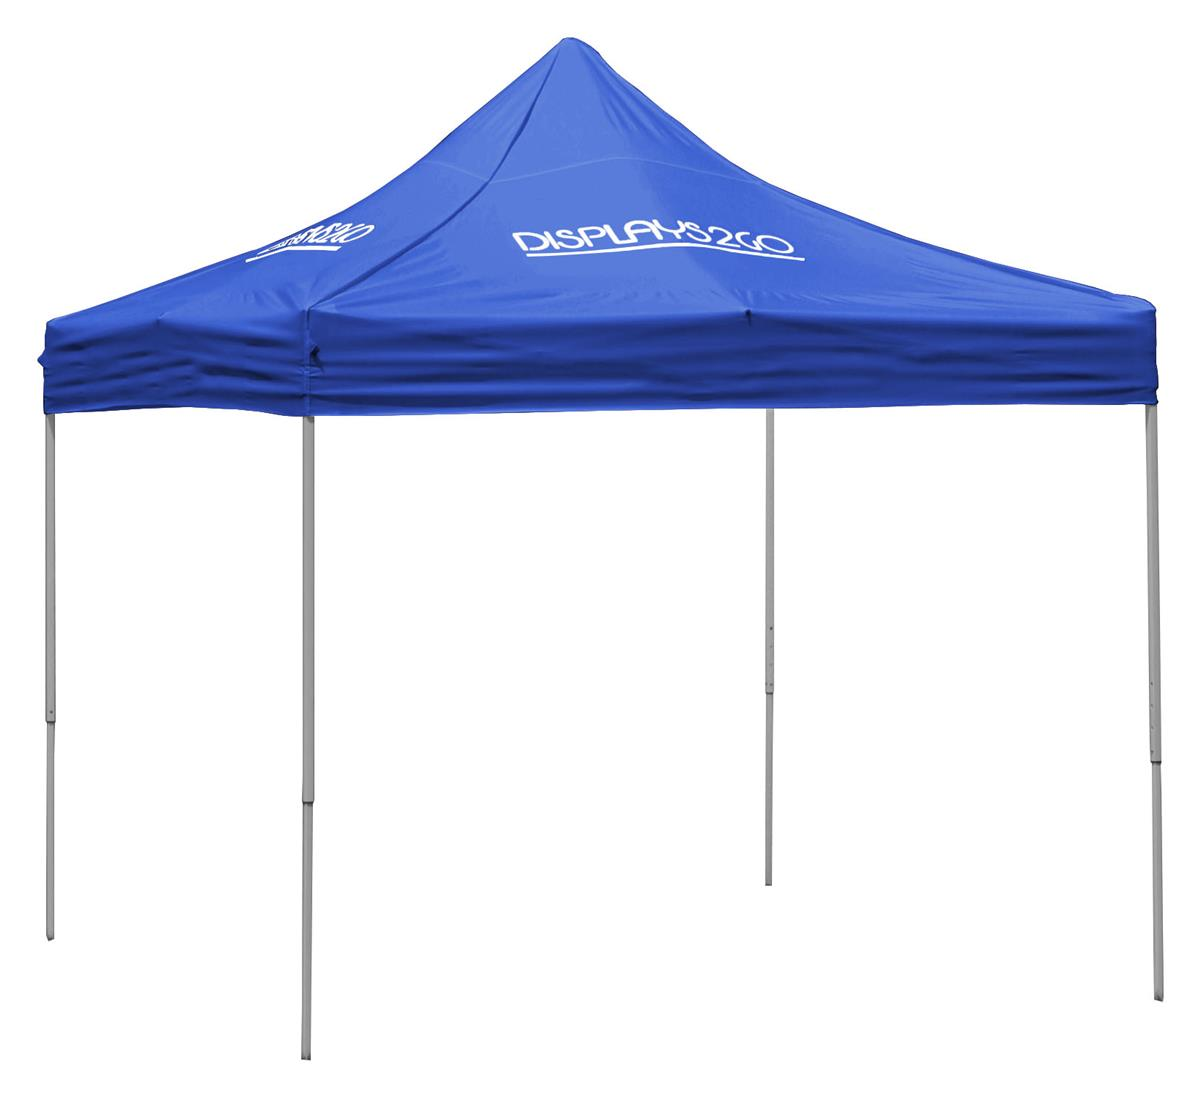 sc 1 st  Displays2go & Royal Blue Pop Up Tent | Outdoor Canopy With Custom Printing